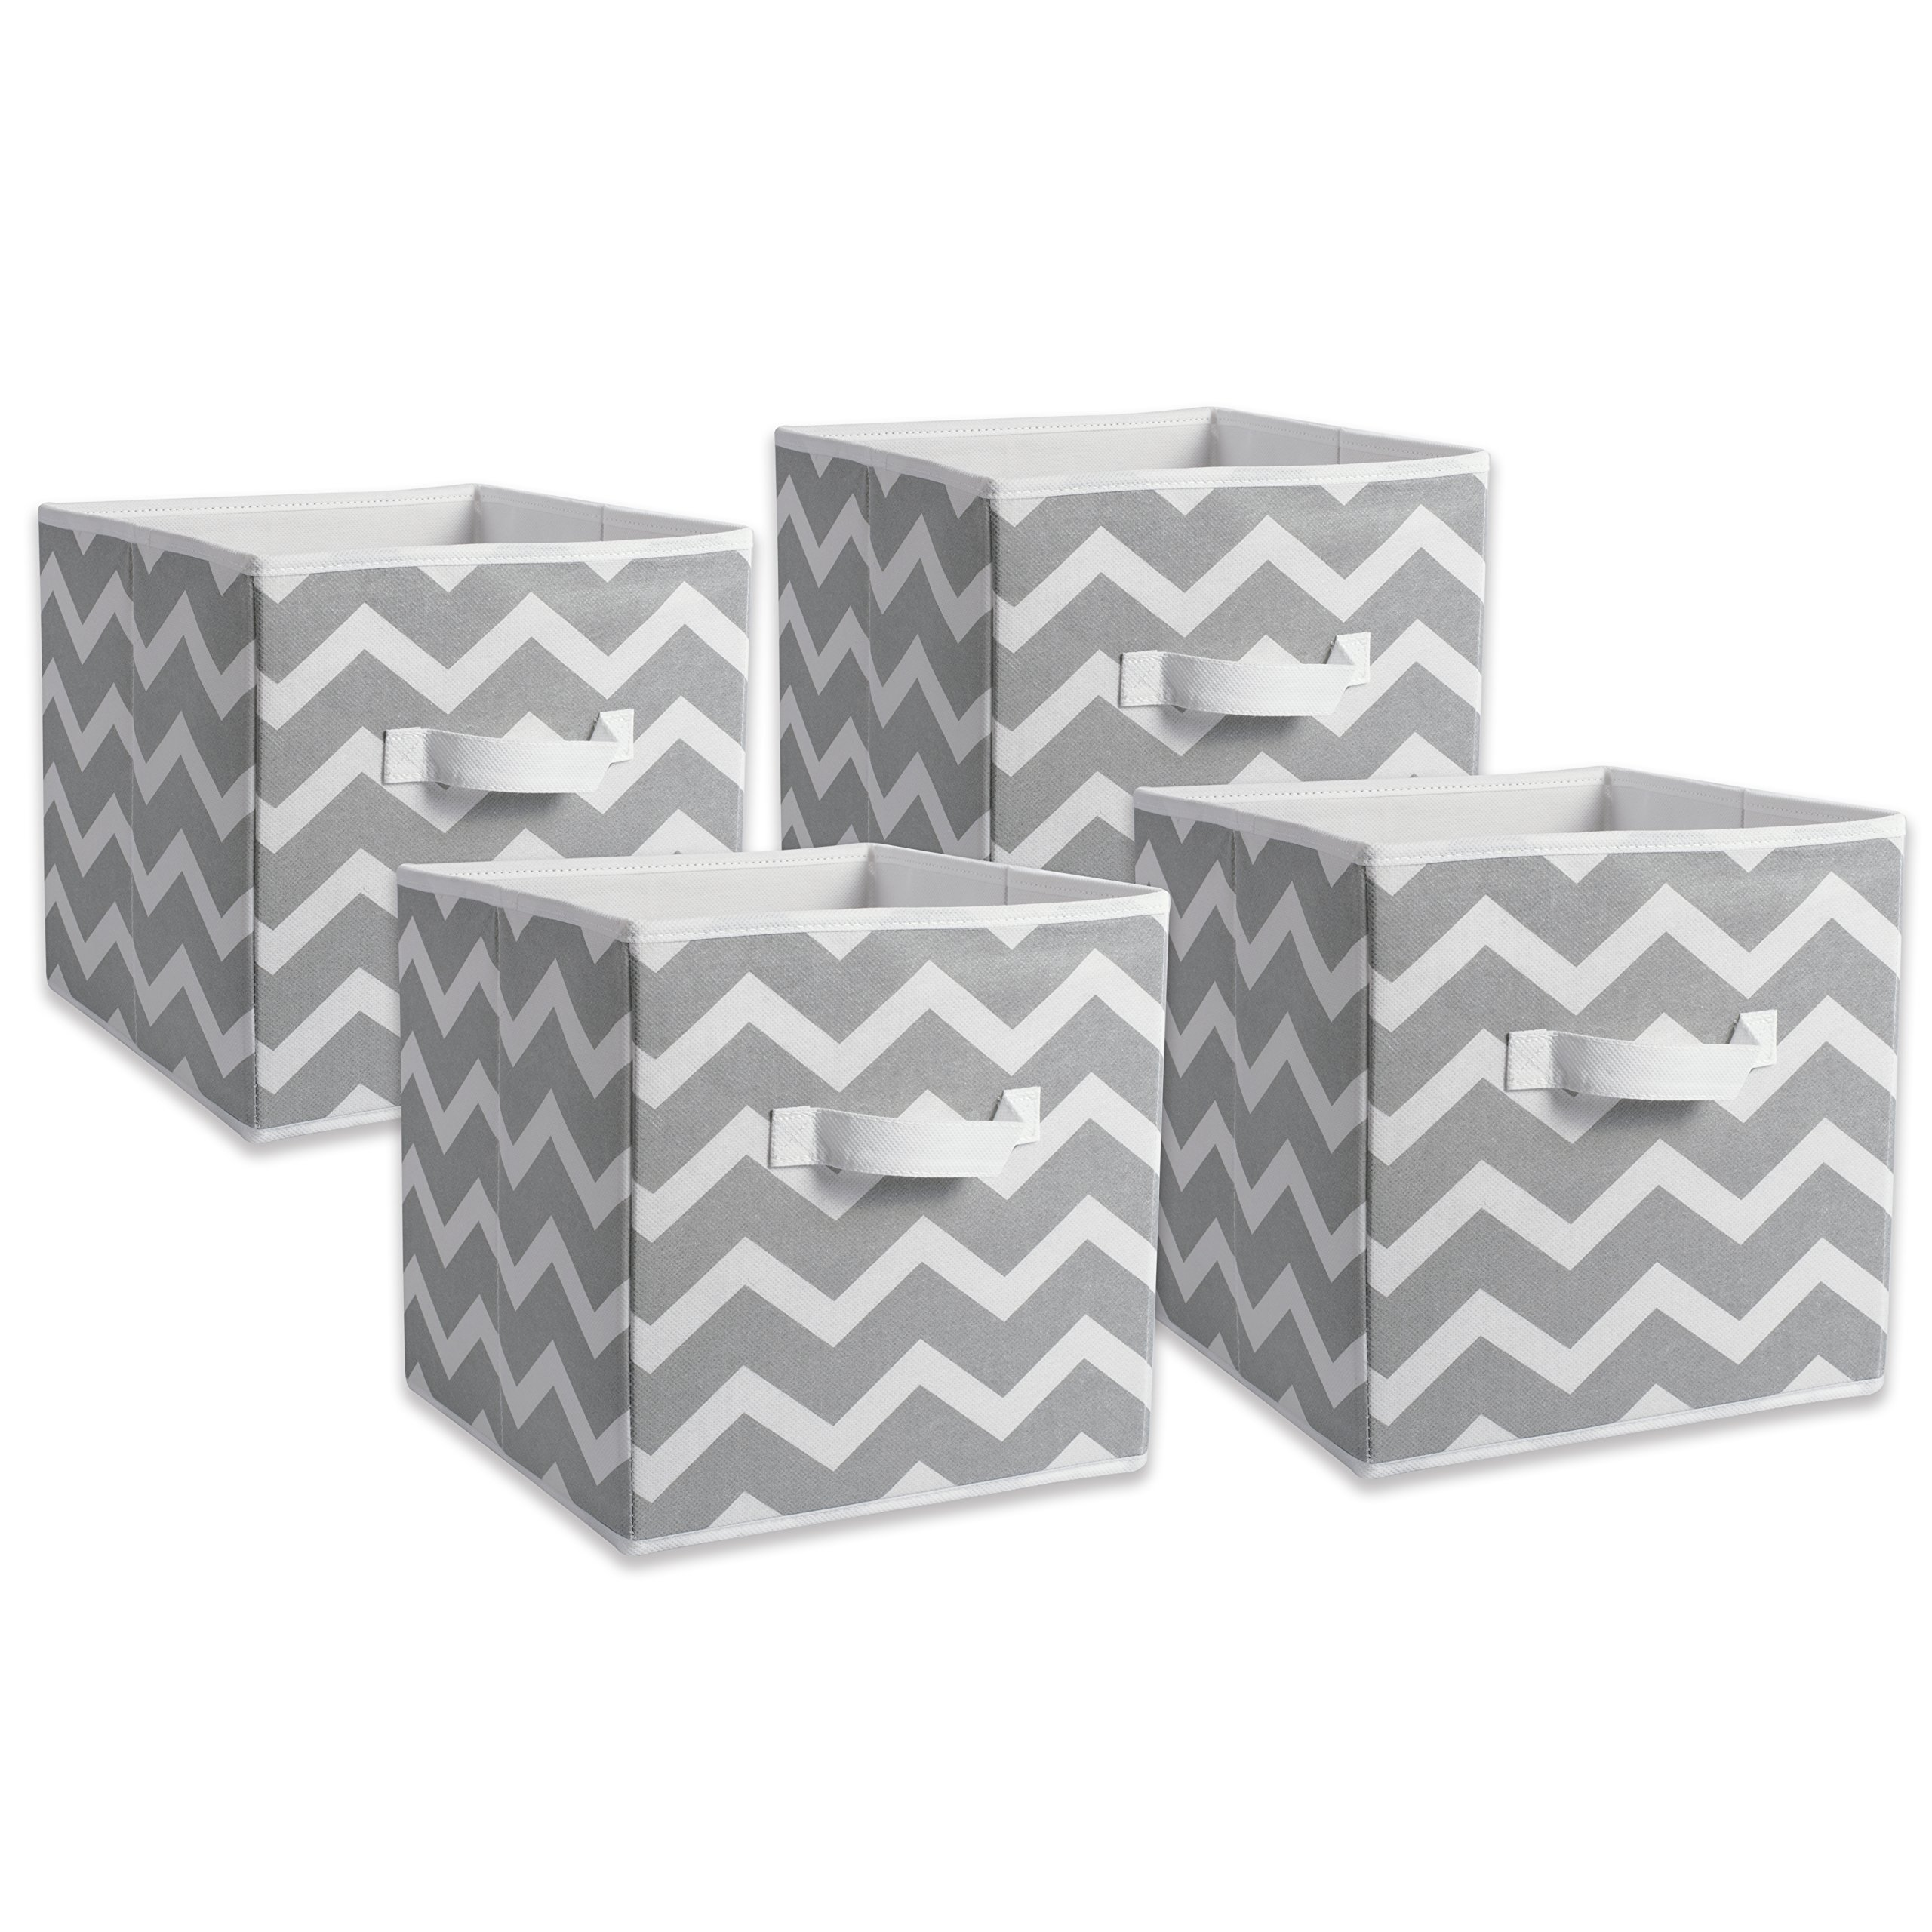 DII Fabric Storage Bins for Nursery, Offices, & Home Organization, Containers Are Made To Fit Standard Cube Organizers (11x11x11'') Chevron Gray - Set of 4